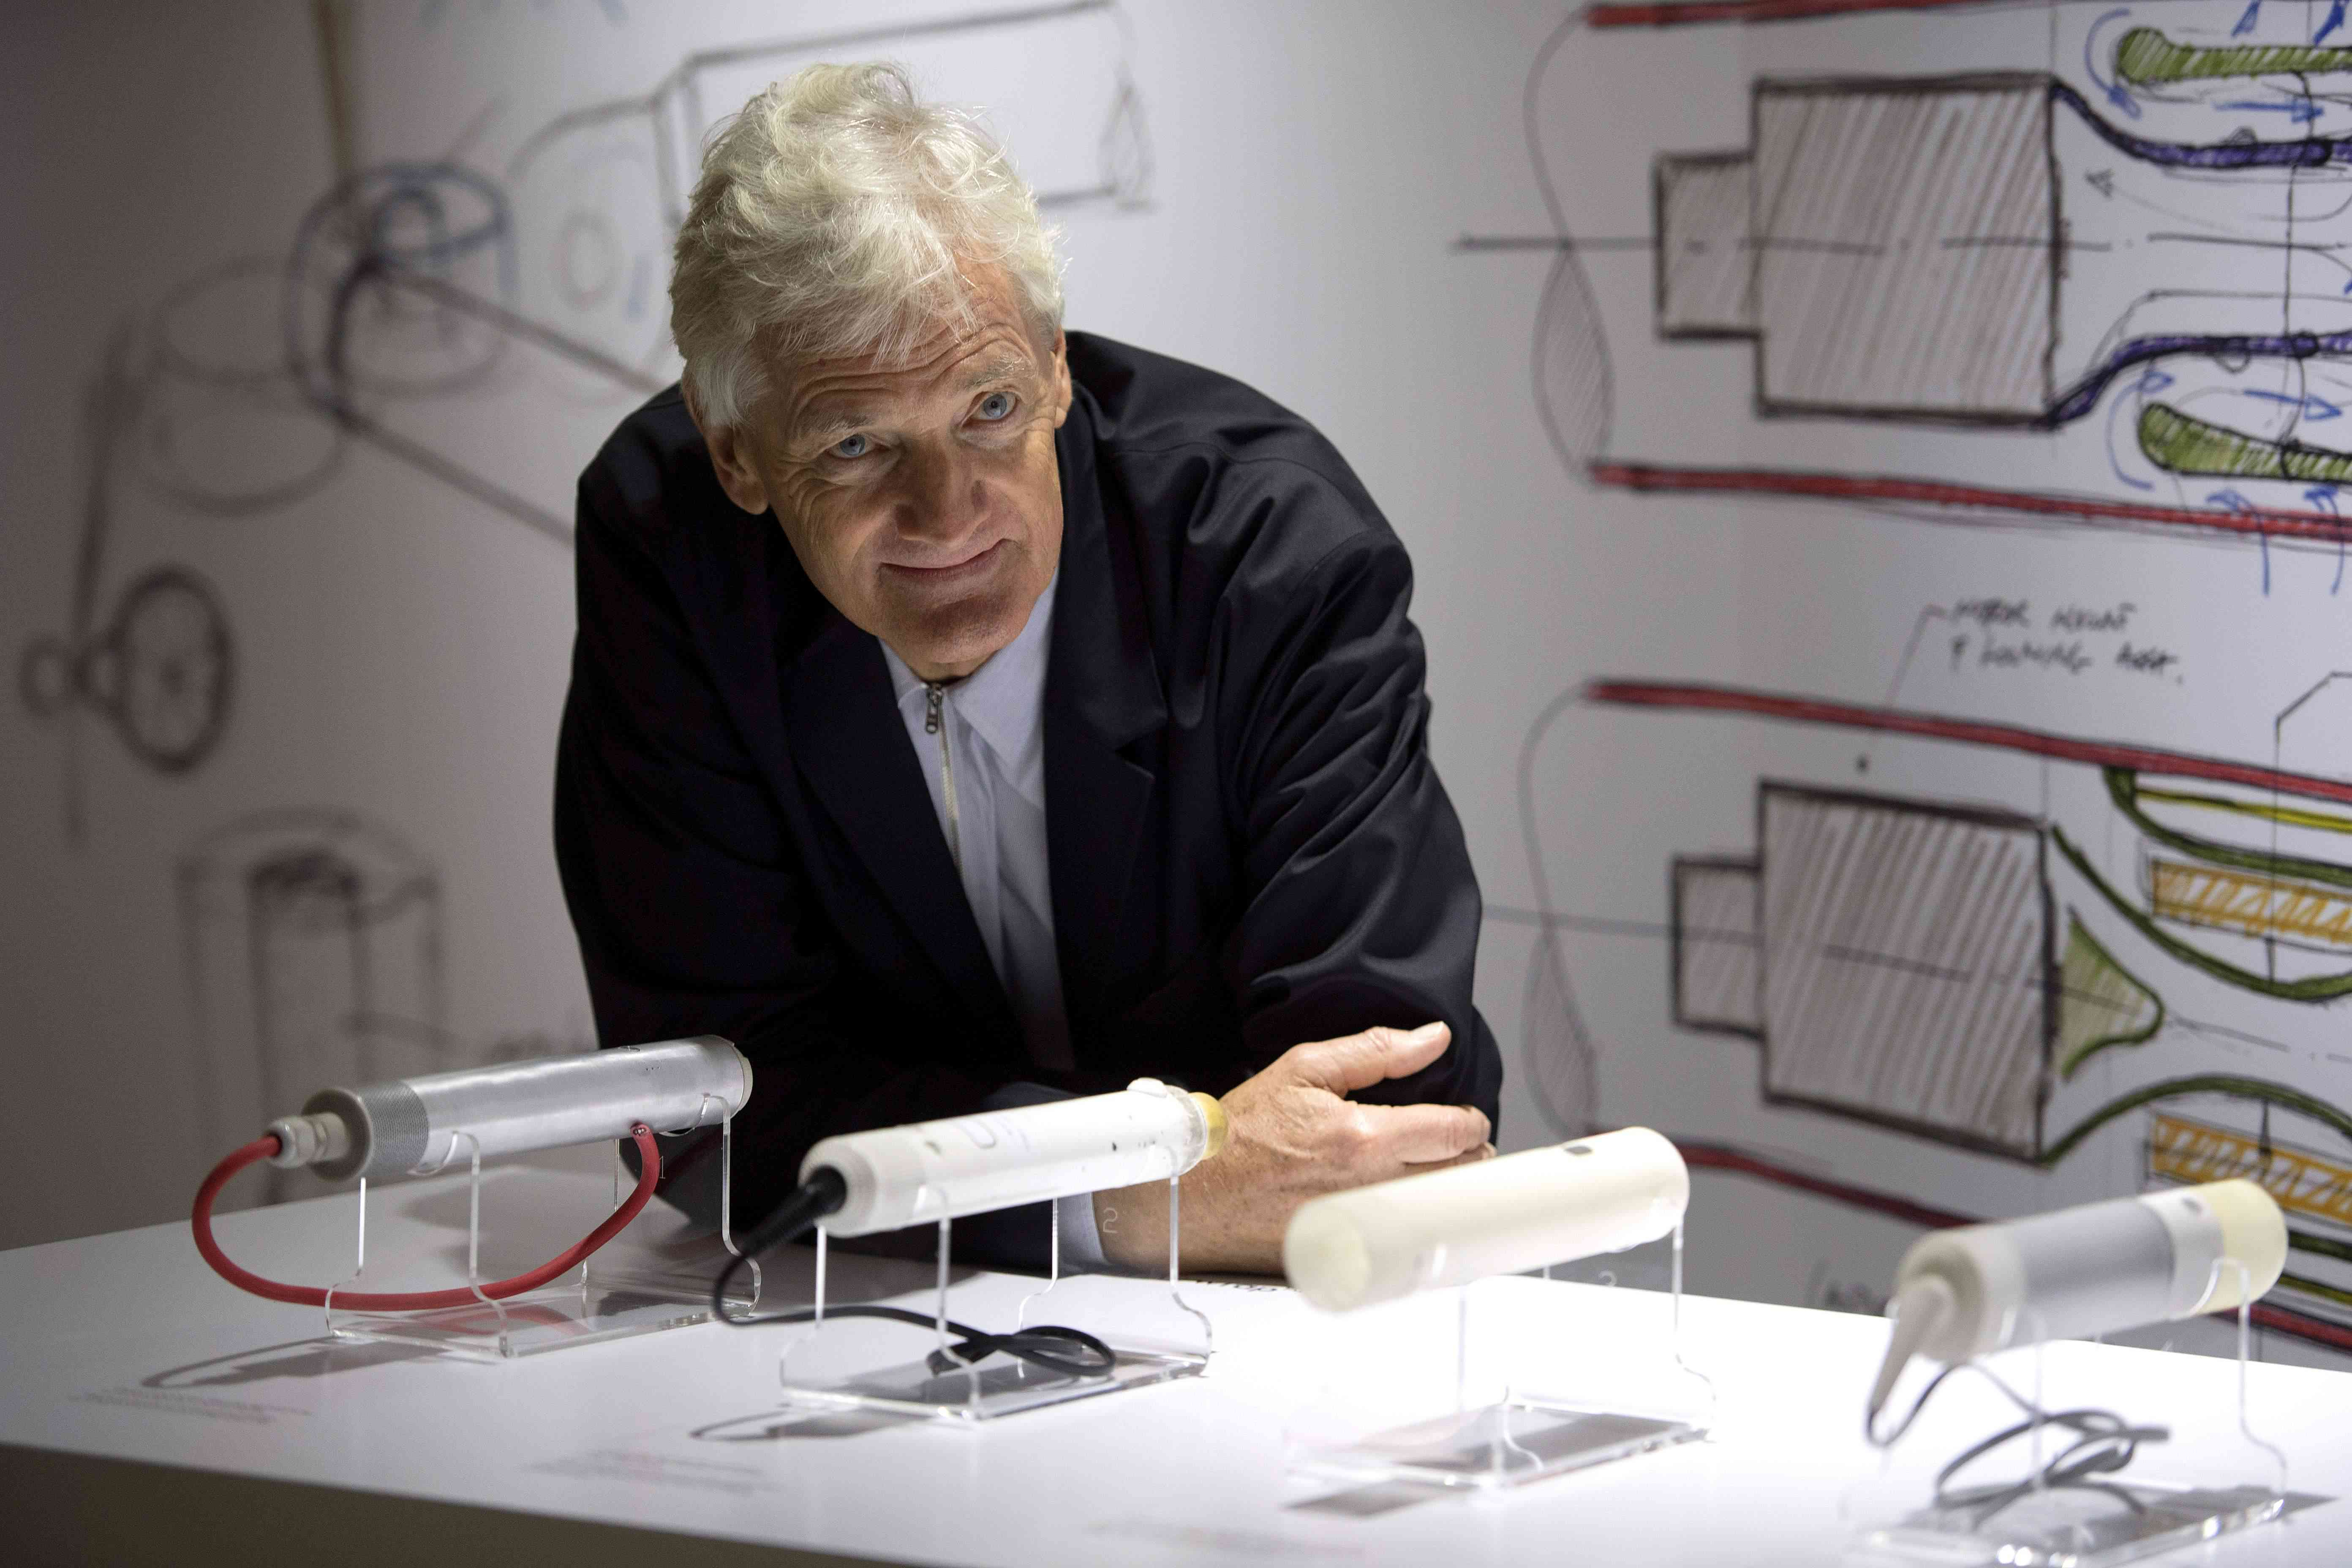 James Dyson posing for the camera.